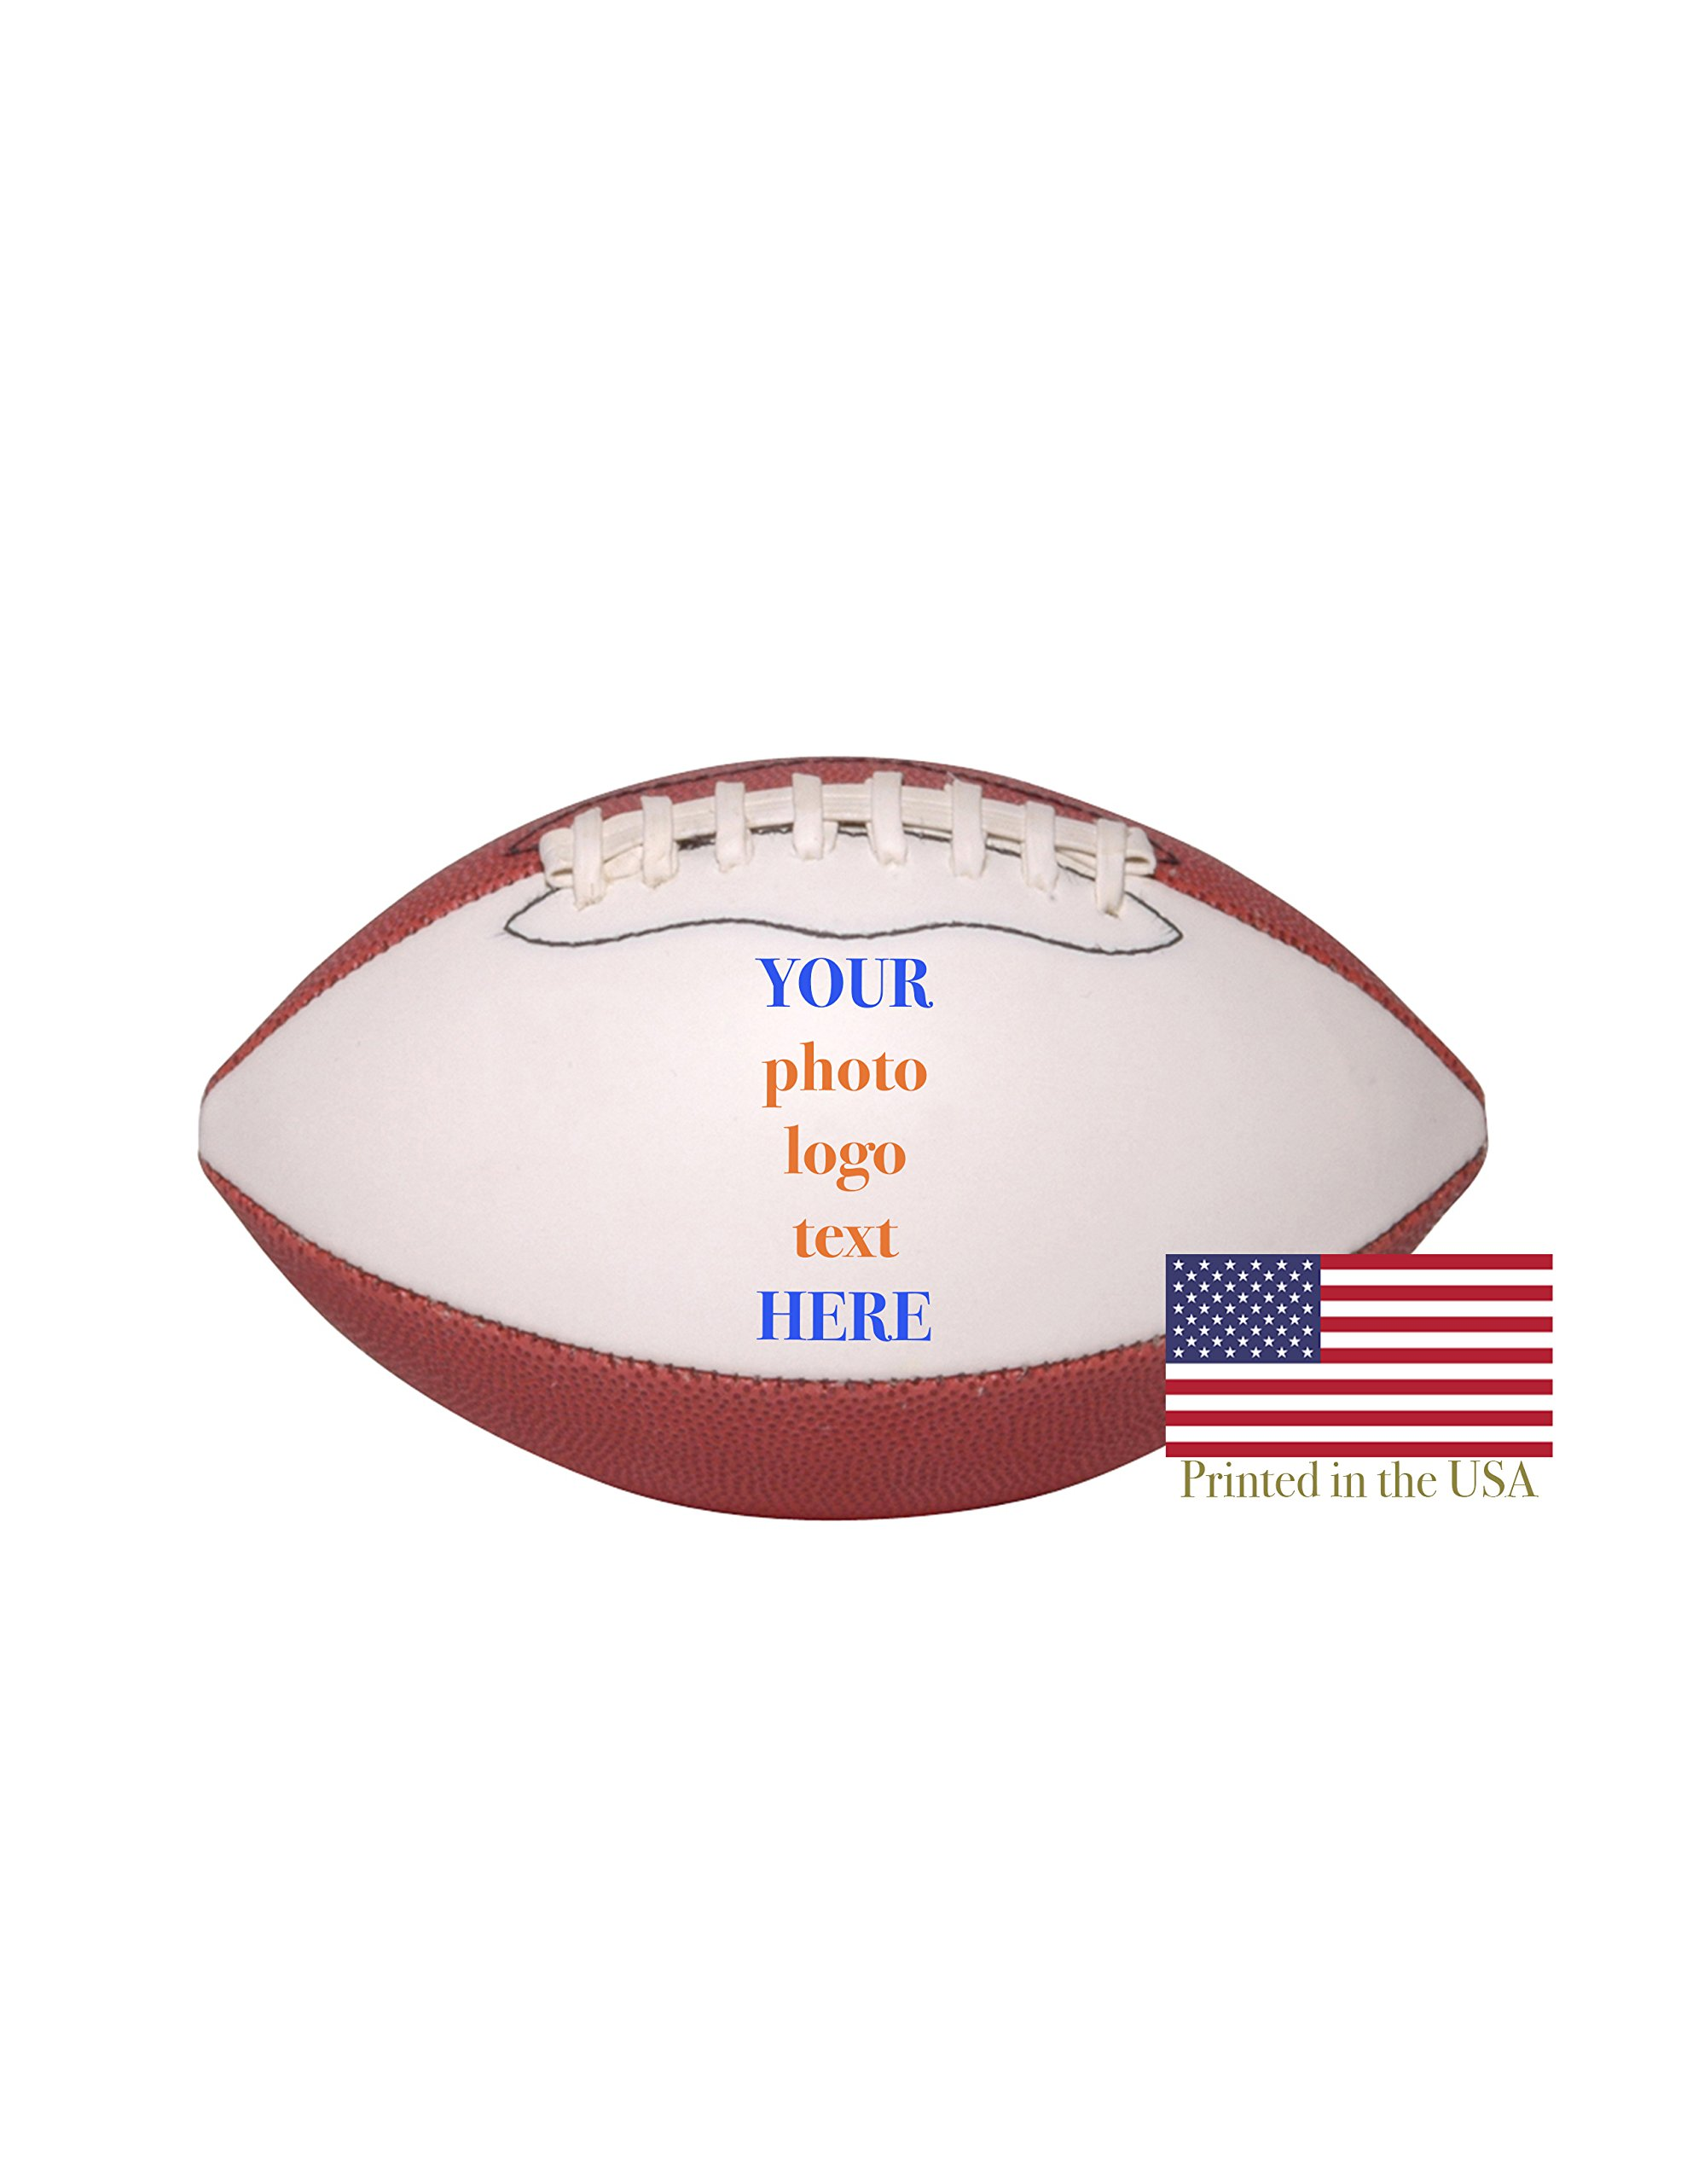 Custom Personalized Football 9 Inch Mid Sized Football Shipped Next Day, High Resolution Photos, Logos & Text on Football Balls for Trophies, Personalized Gifts